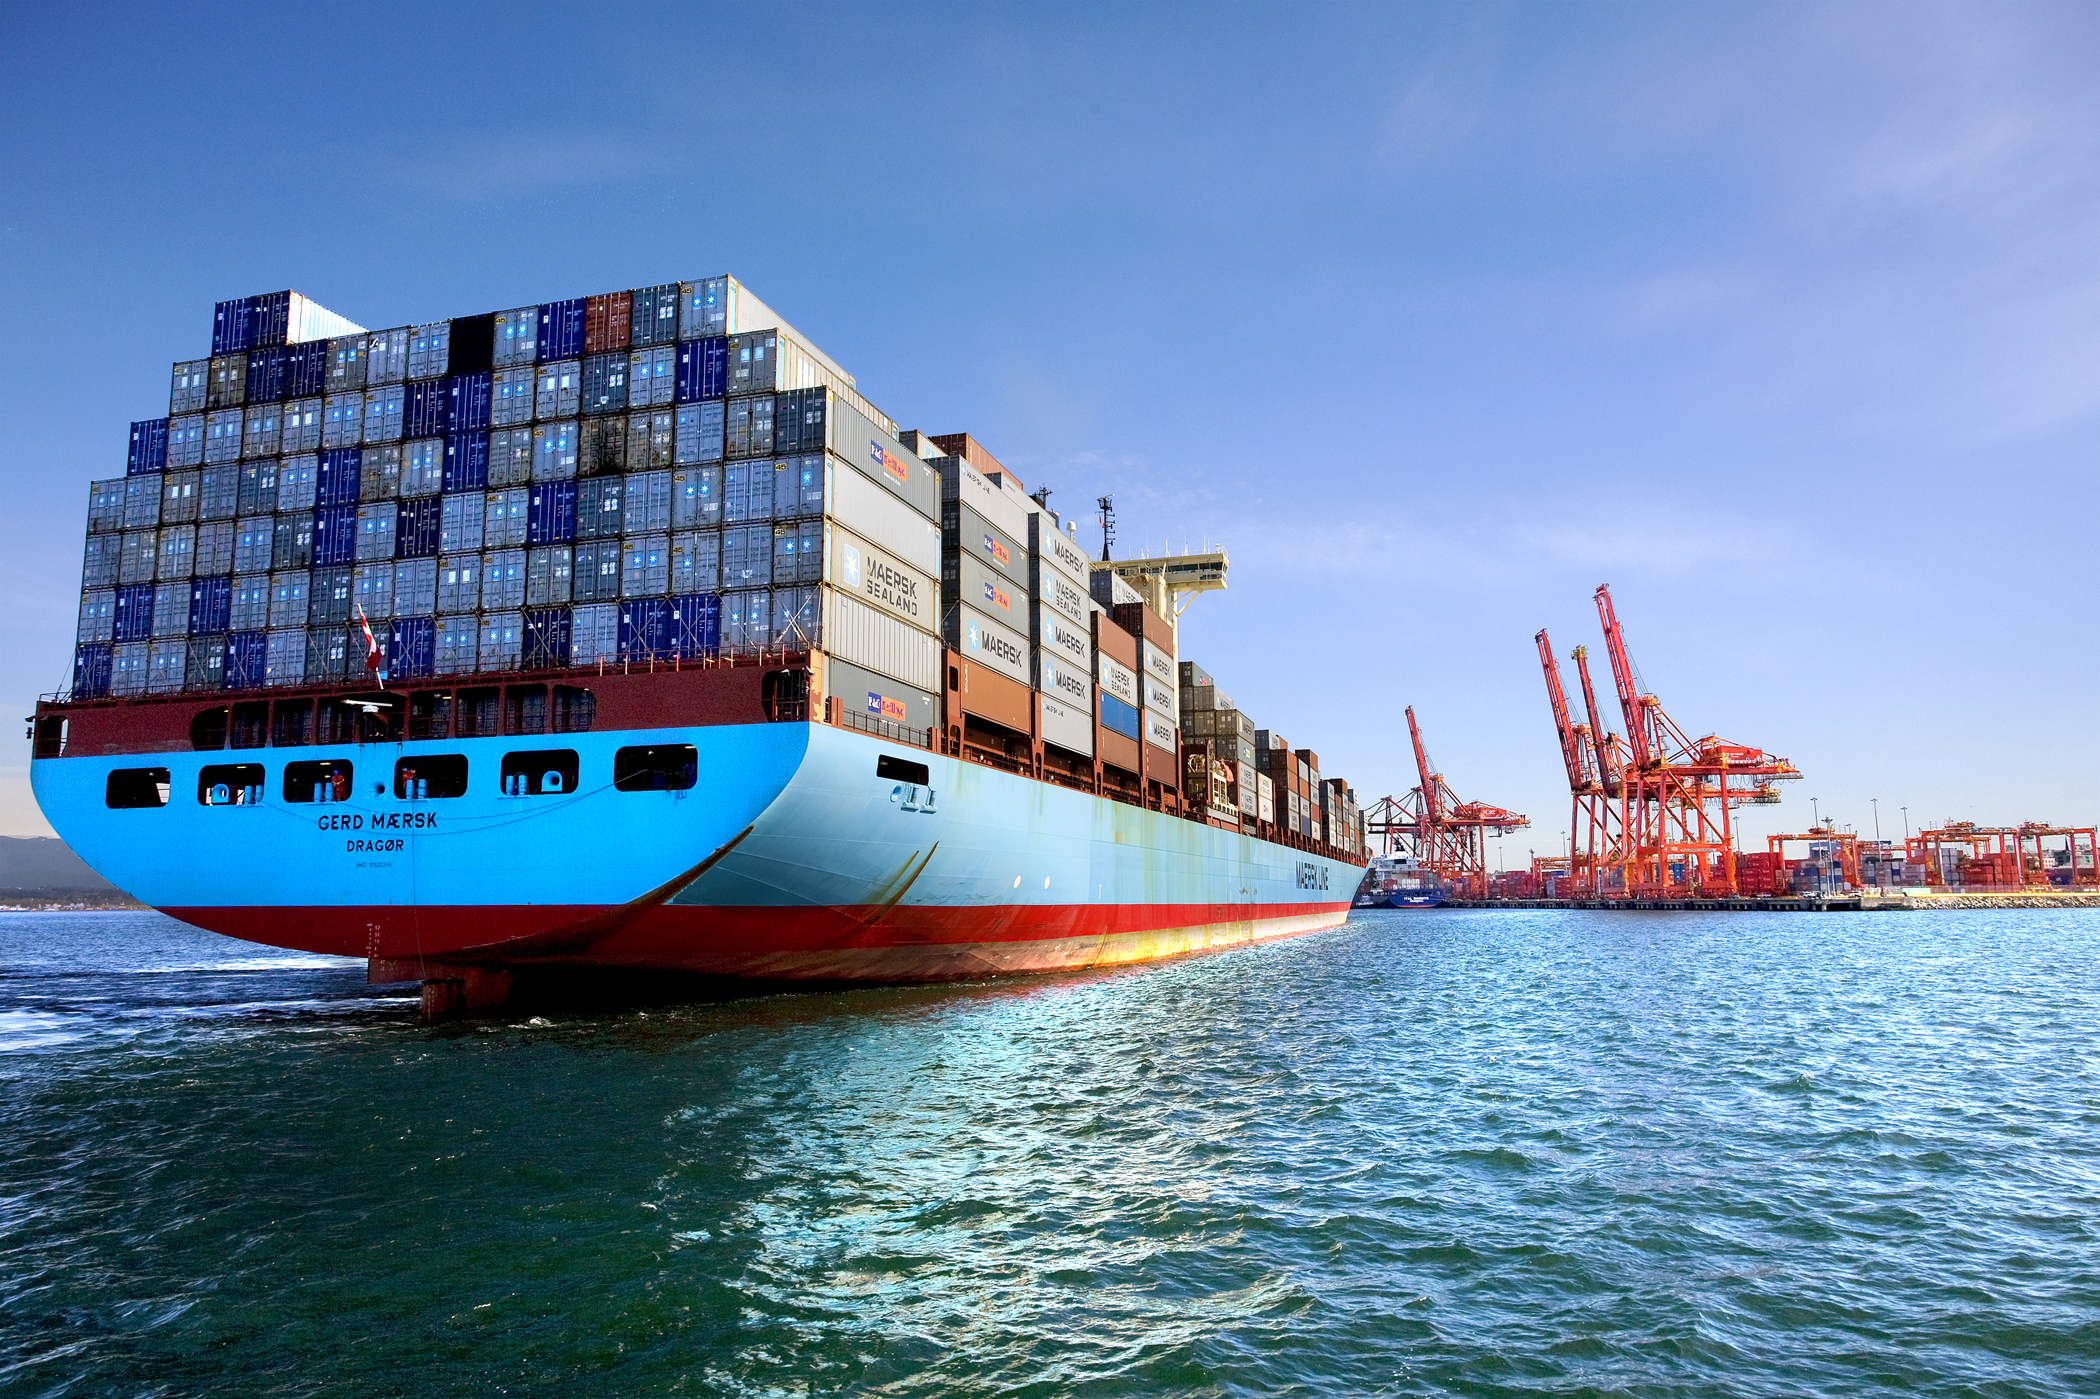 Pressure builds on shipping industry to set carbon targets - The ...